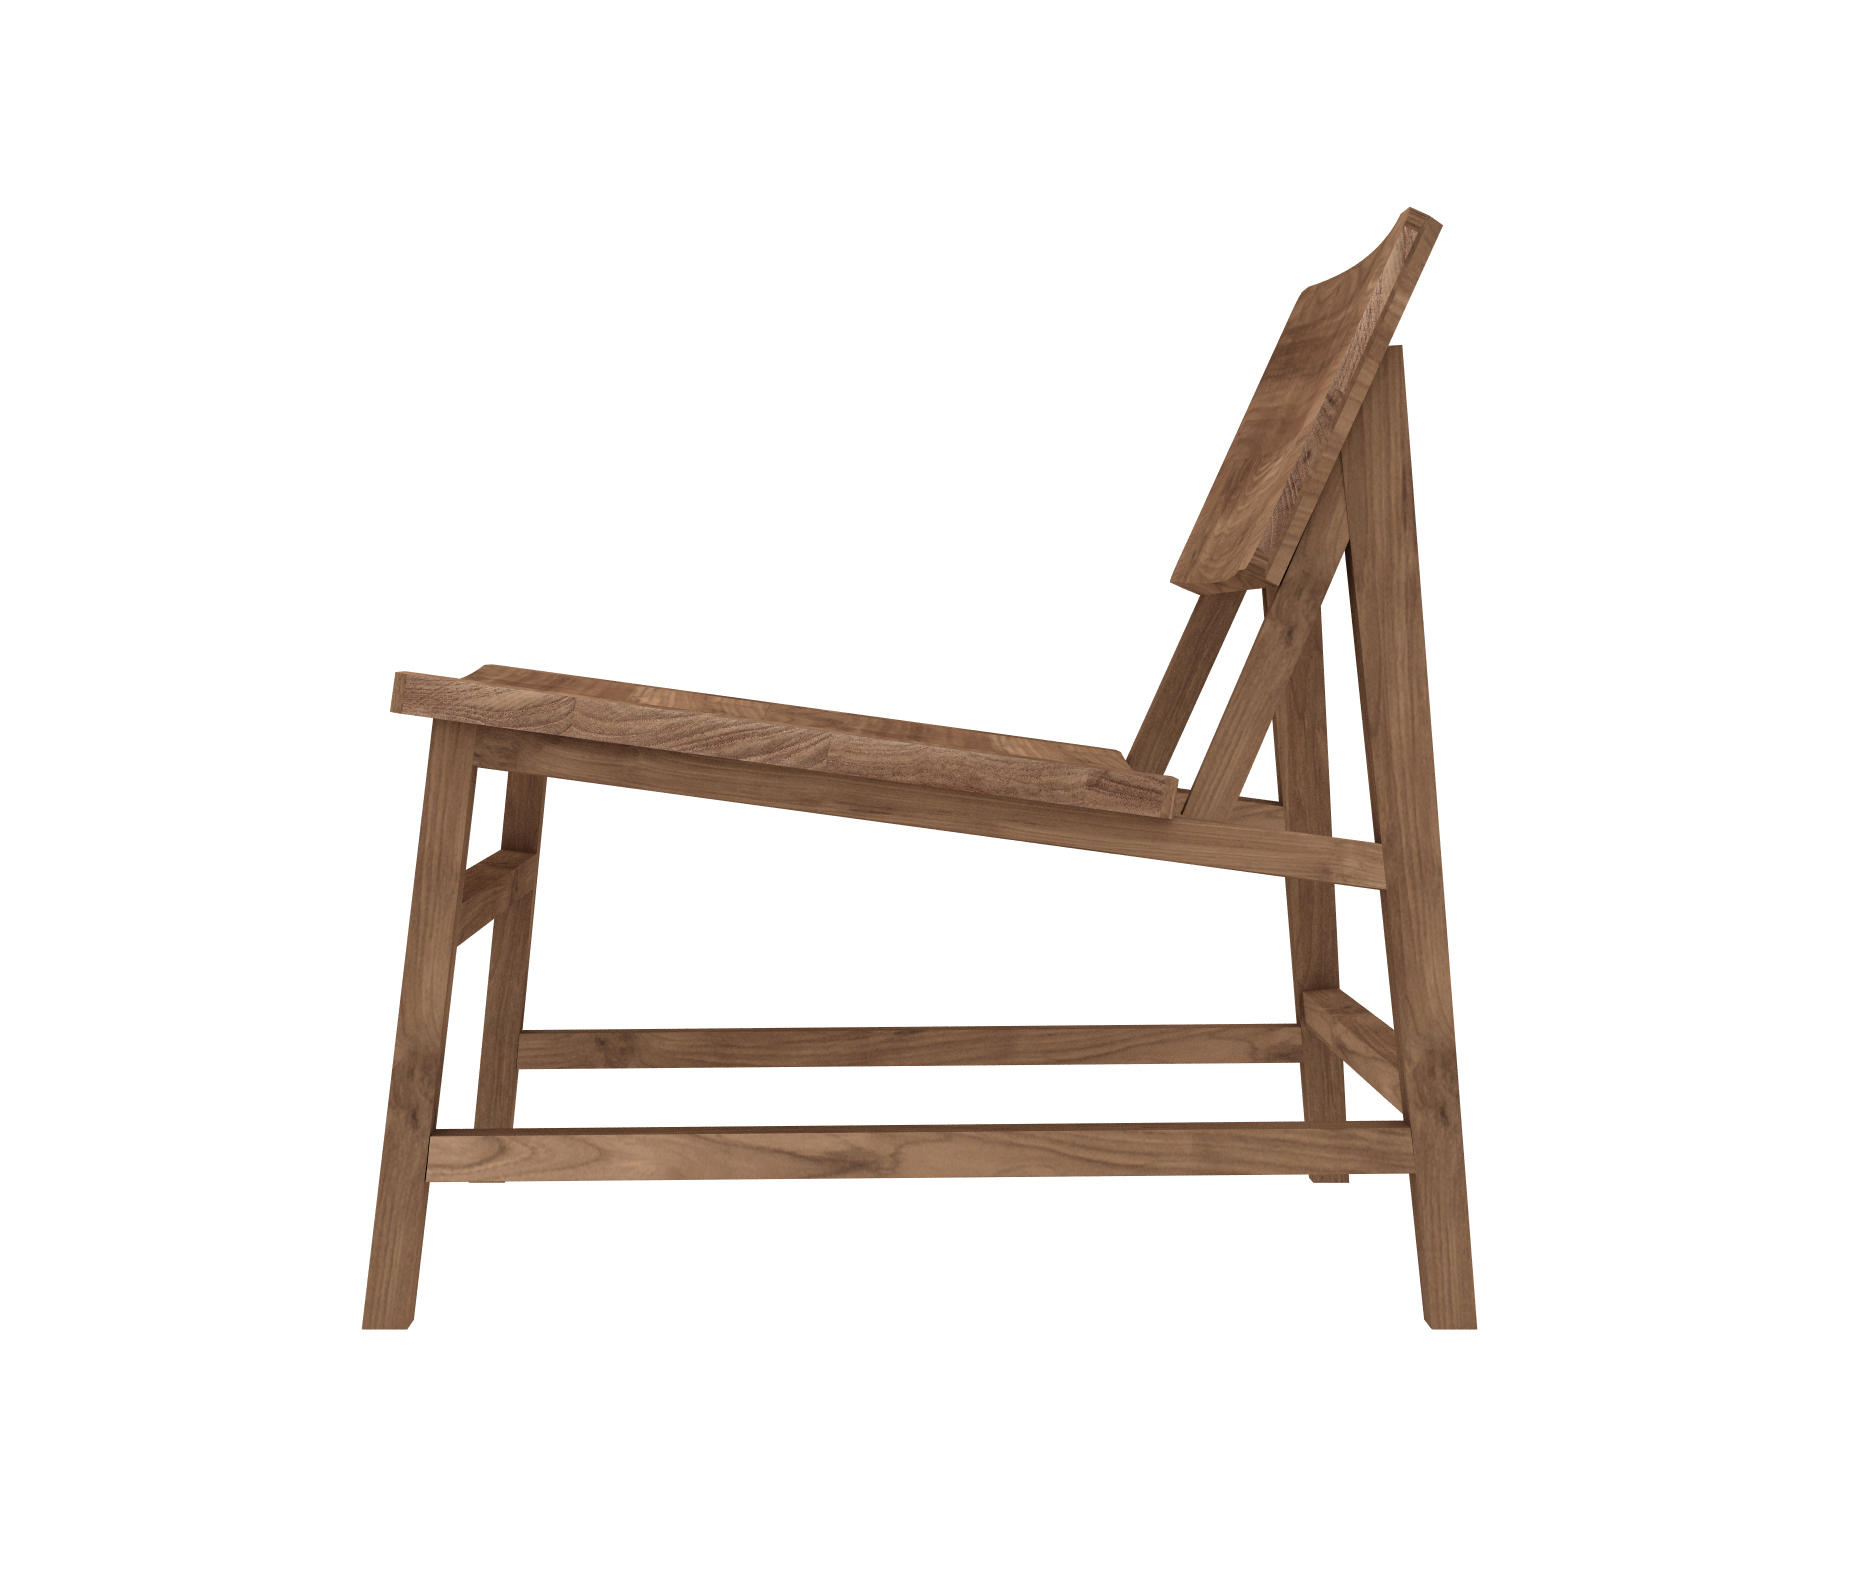 ... Teak N2 Lounge Chair By Ethnicraft | Lounge Chairs